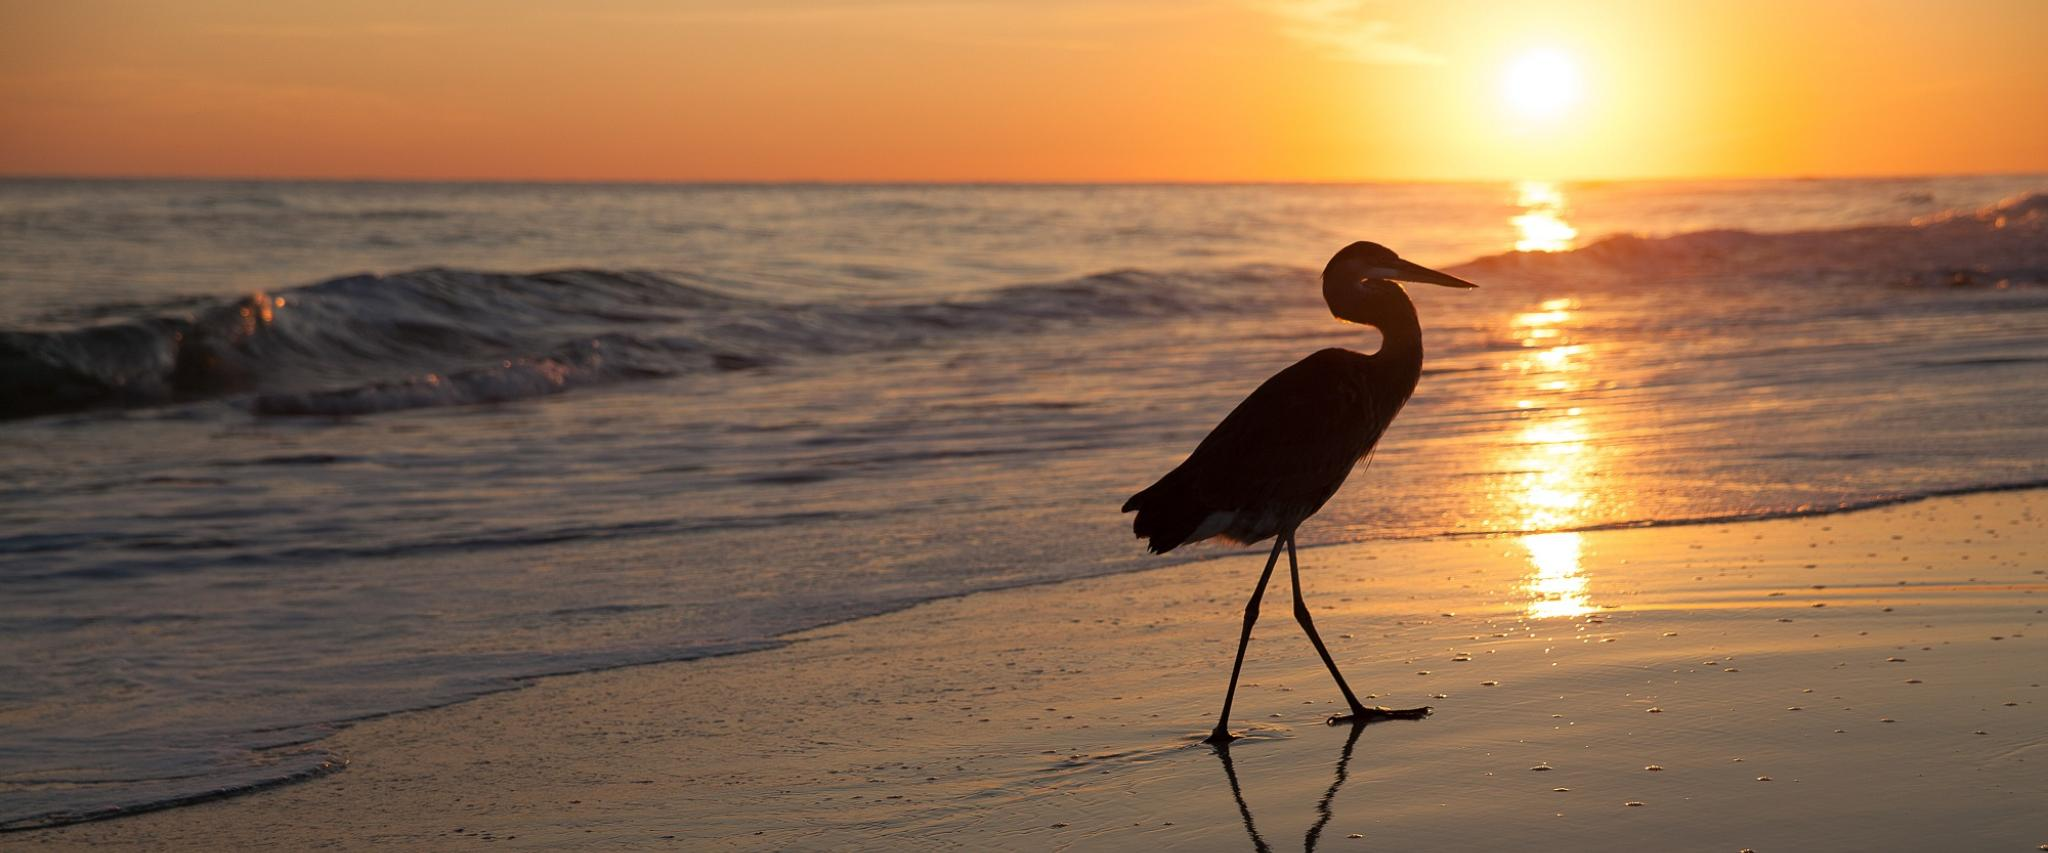 heron walking the beach at sunset in Orange Beach al